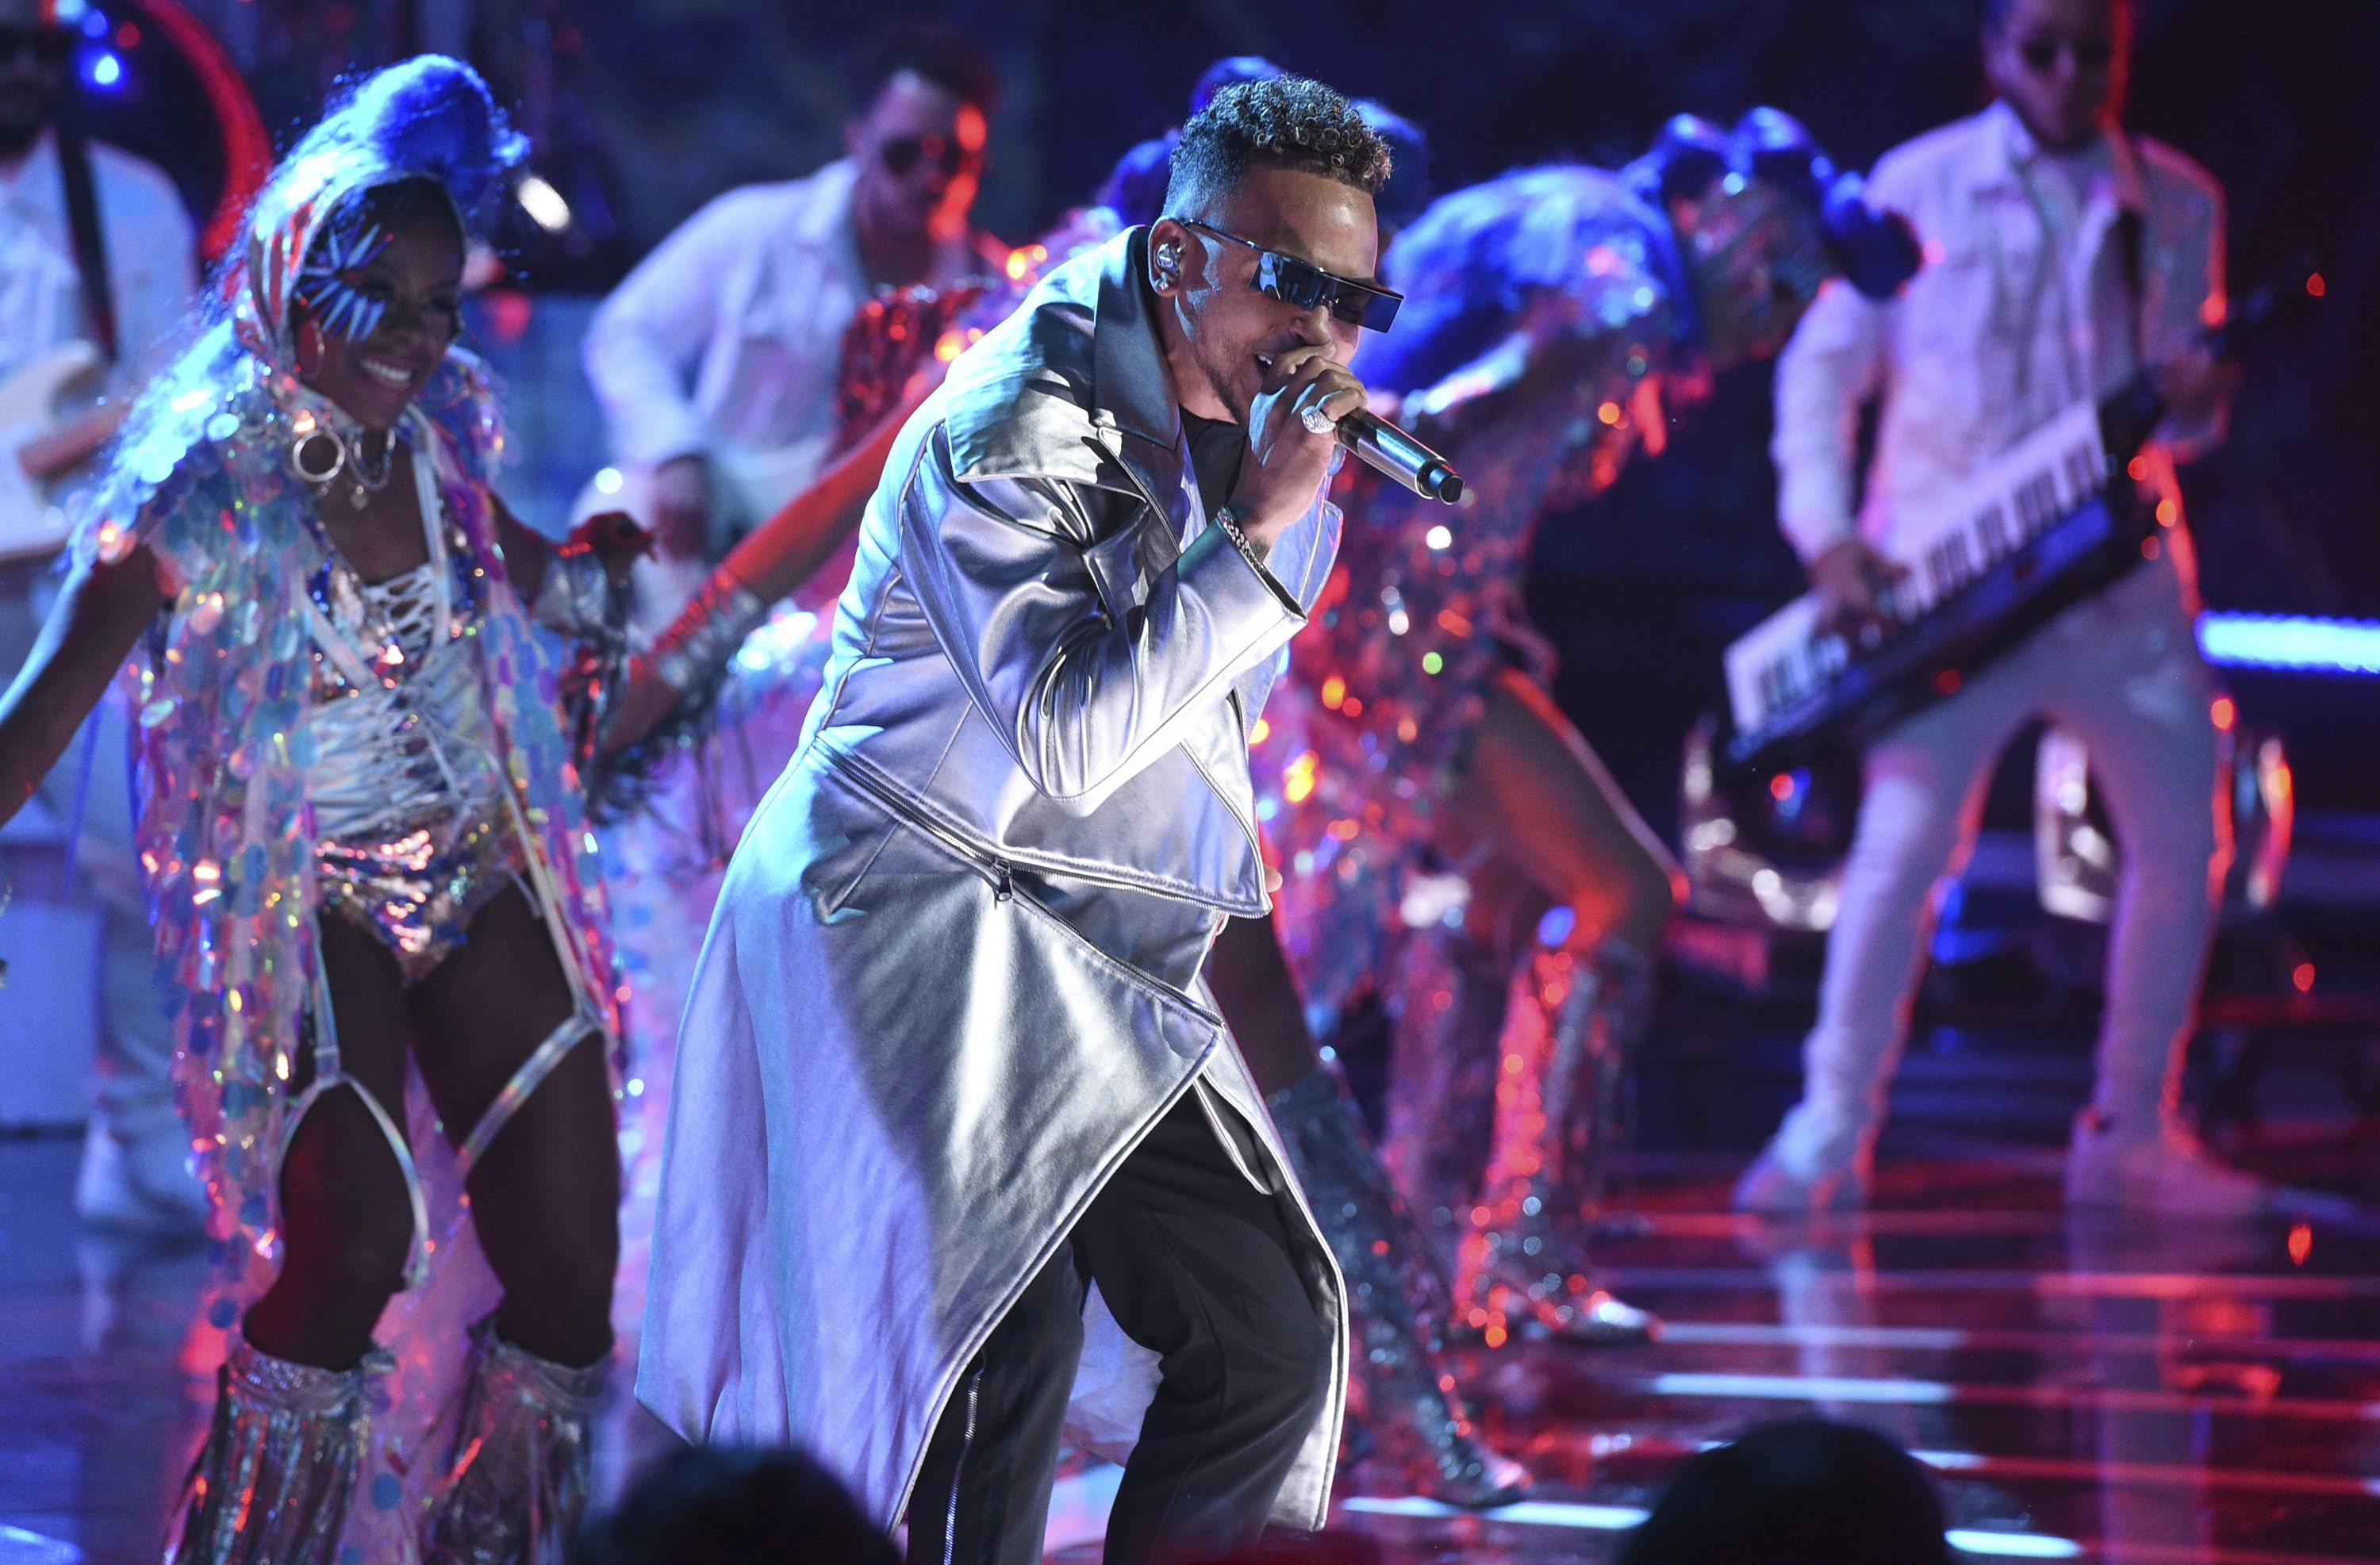 FILE - Ozuna performs at the Latin American Music Awards in Los Angeles on Oct. 17, 2019. Ozuna received eight nominations at the 2020 Latin Grammys, which will air live on Nov. 19 on Univision. (Photo by Chris Pizzello/Invision/AP, File)